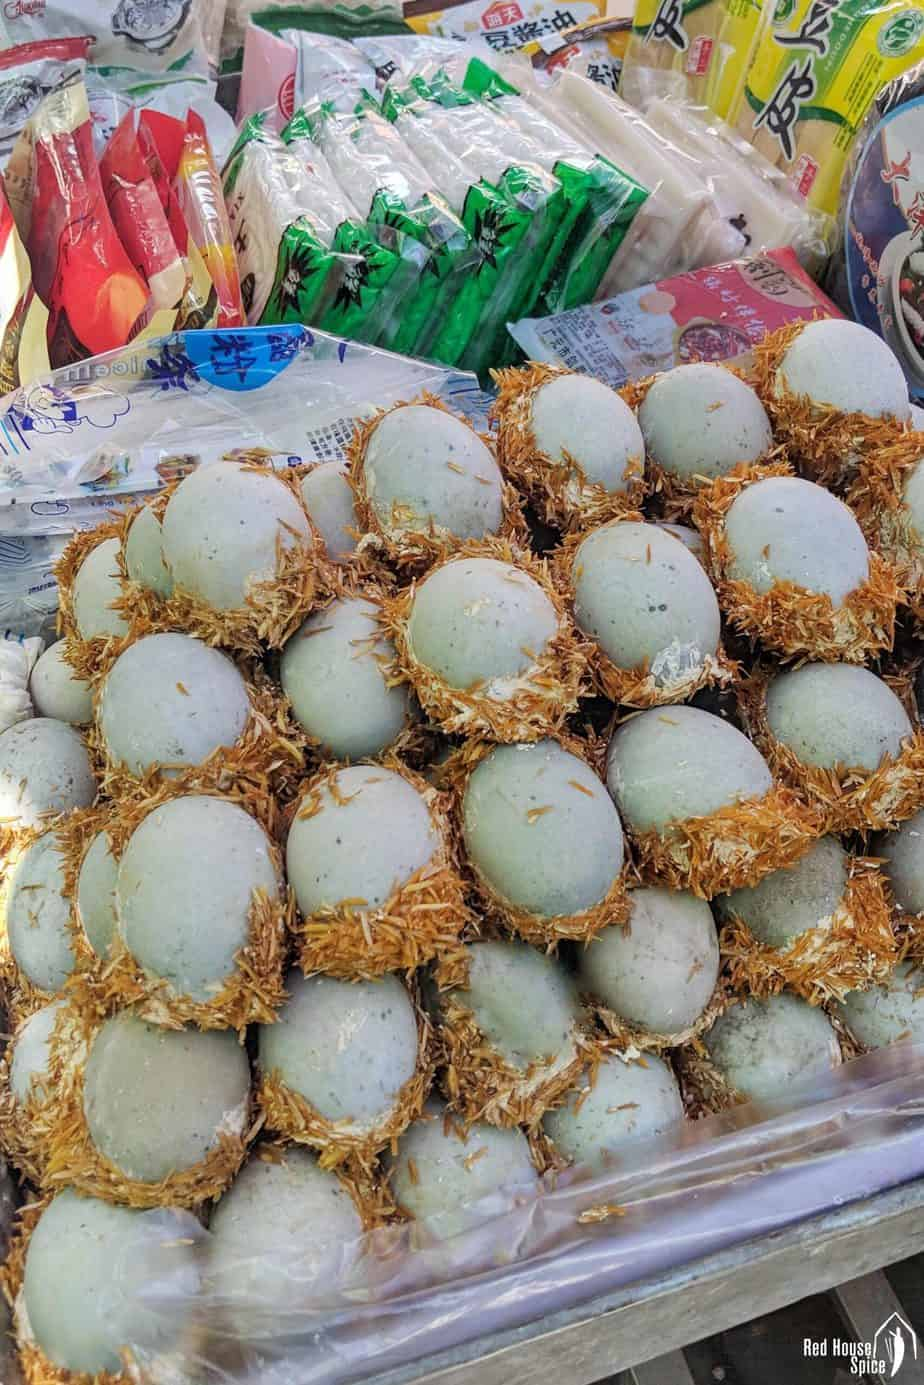 Century eggs sold in a market.